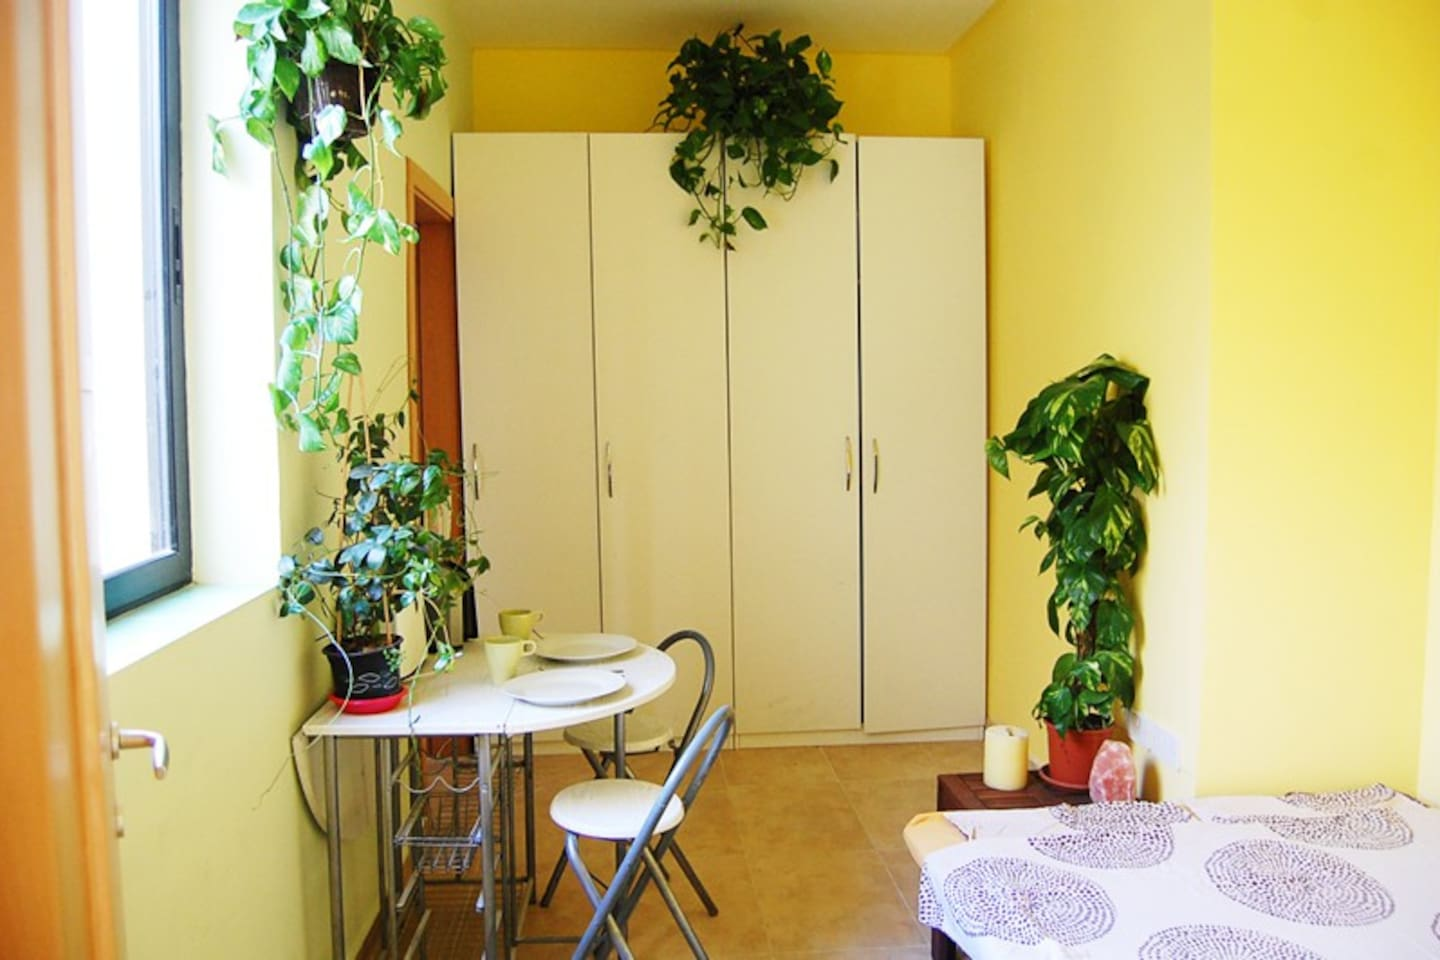 Your bright en-suite double-bedroom with yellow walls, free Wi-Fi, a big window facing to the inner yard which makes the room very quiet. Walls are painted yellow to activate your 3rd chakra (solar plexus), which  is responsible for self-esteem. A couple